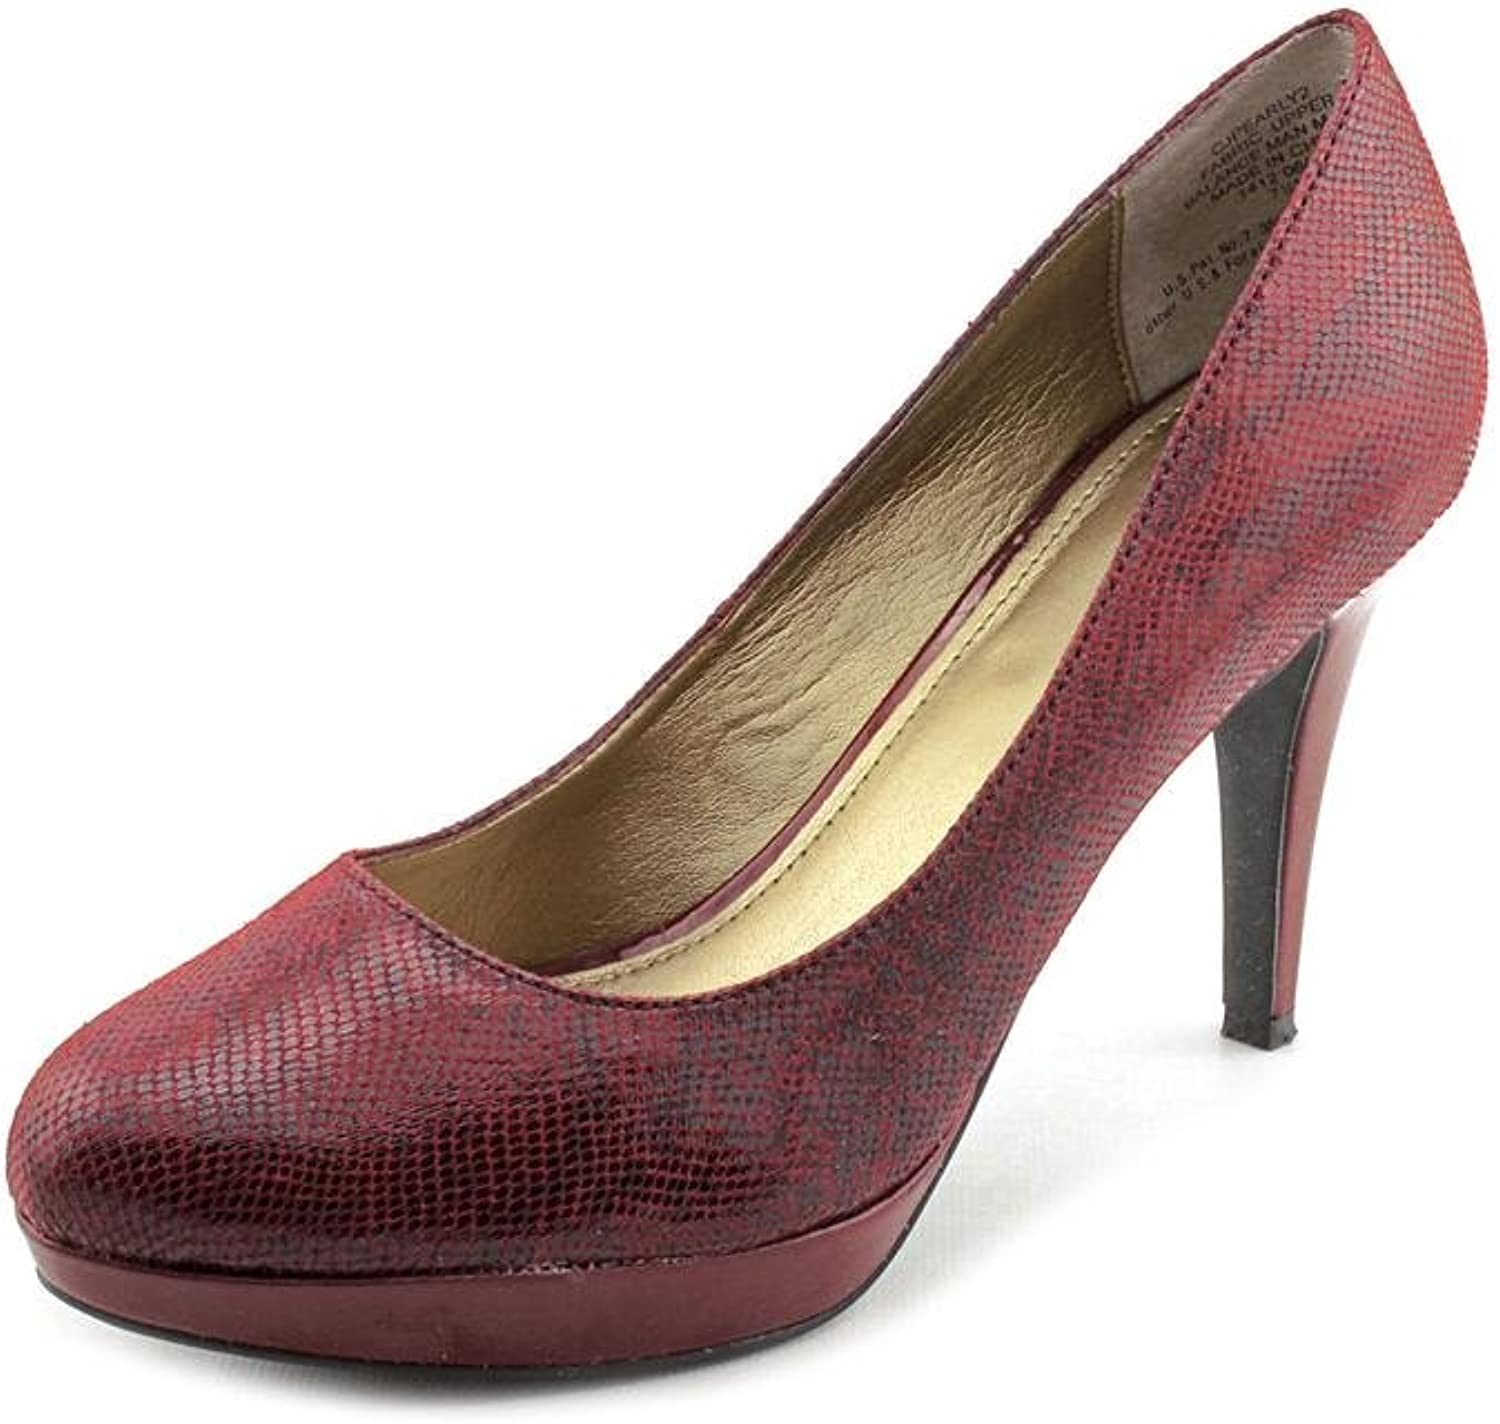 Circa Joan & David Pearly 2 Womens US Size 7 Red Fabric Pumps Heels shoes